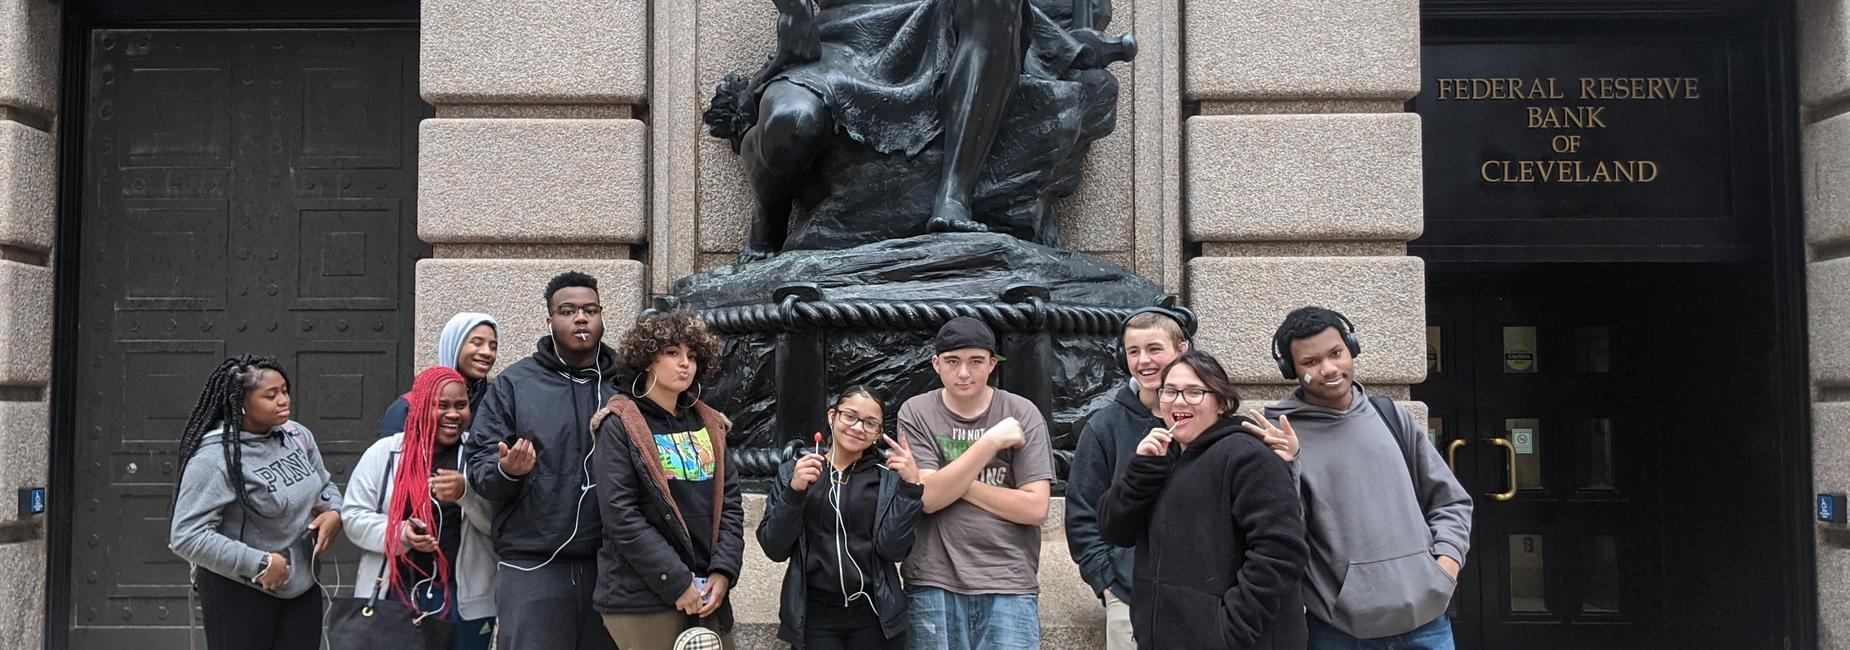 Cleveland Federal Reserve Field Trip Student Picture.